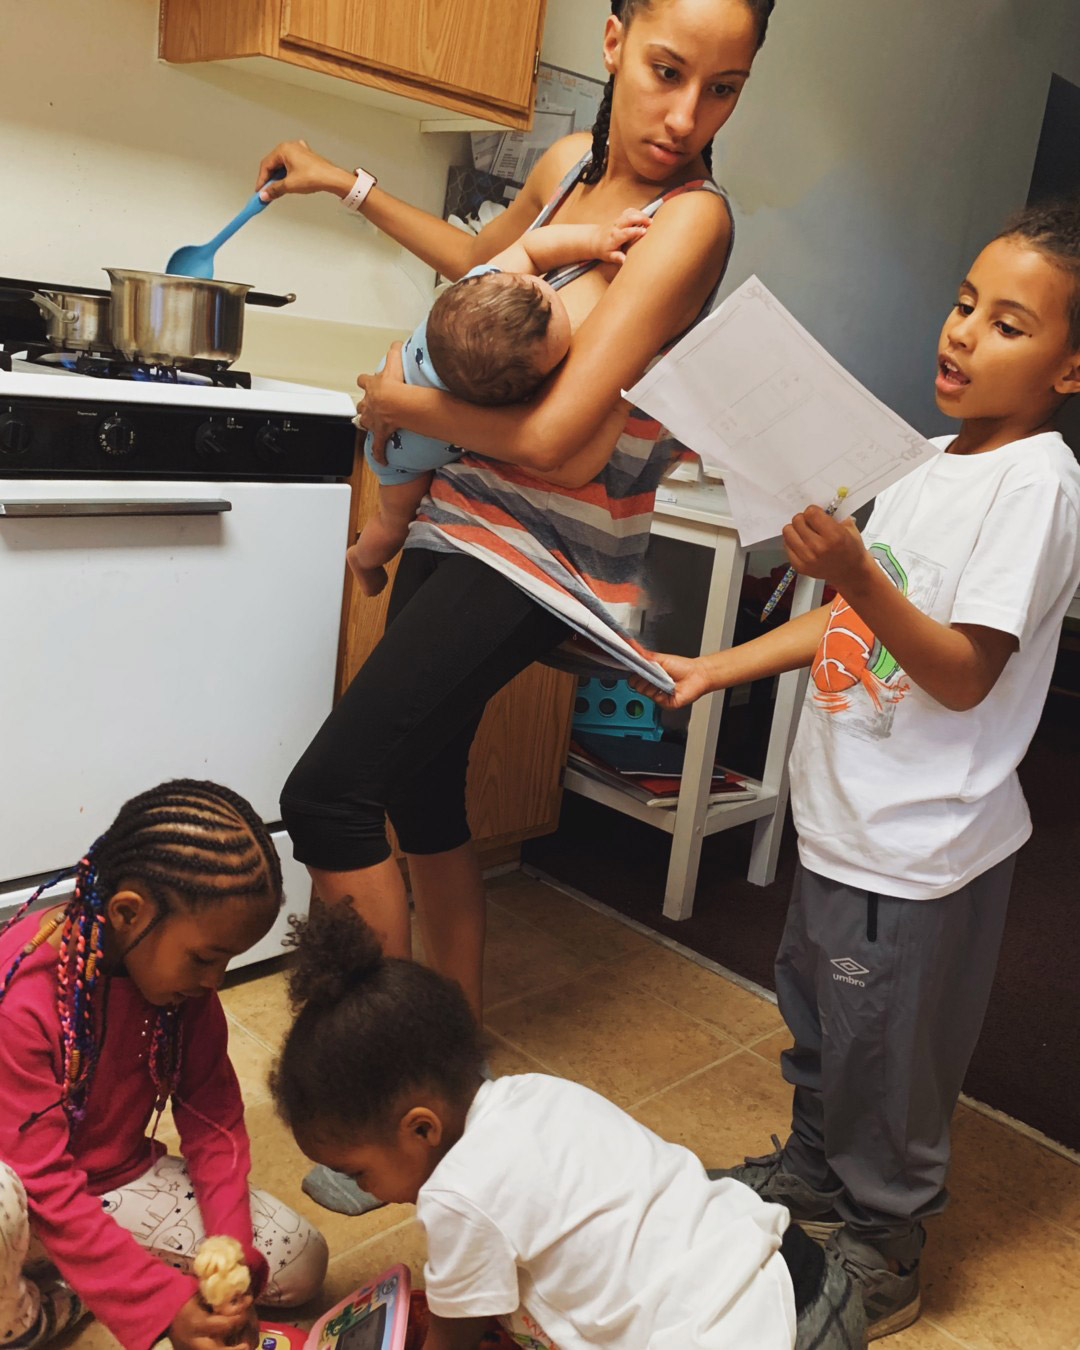 Mom of Four Shares Candid Multitasking Photo: 'There's Not Enough Realness on Social Media'